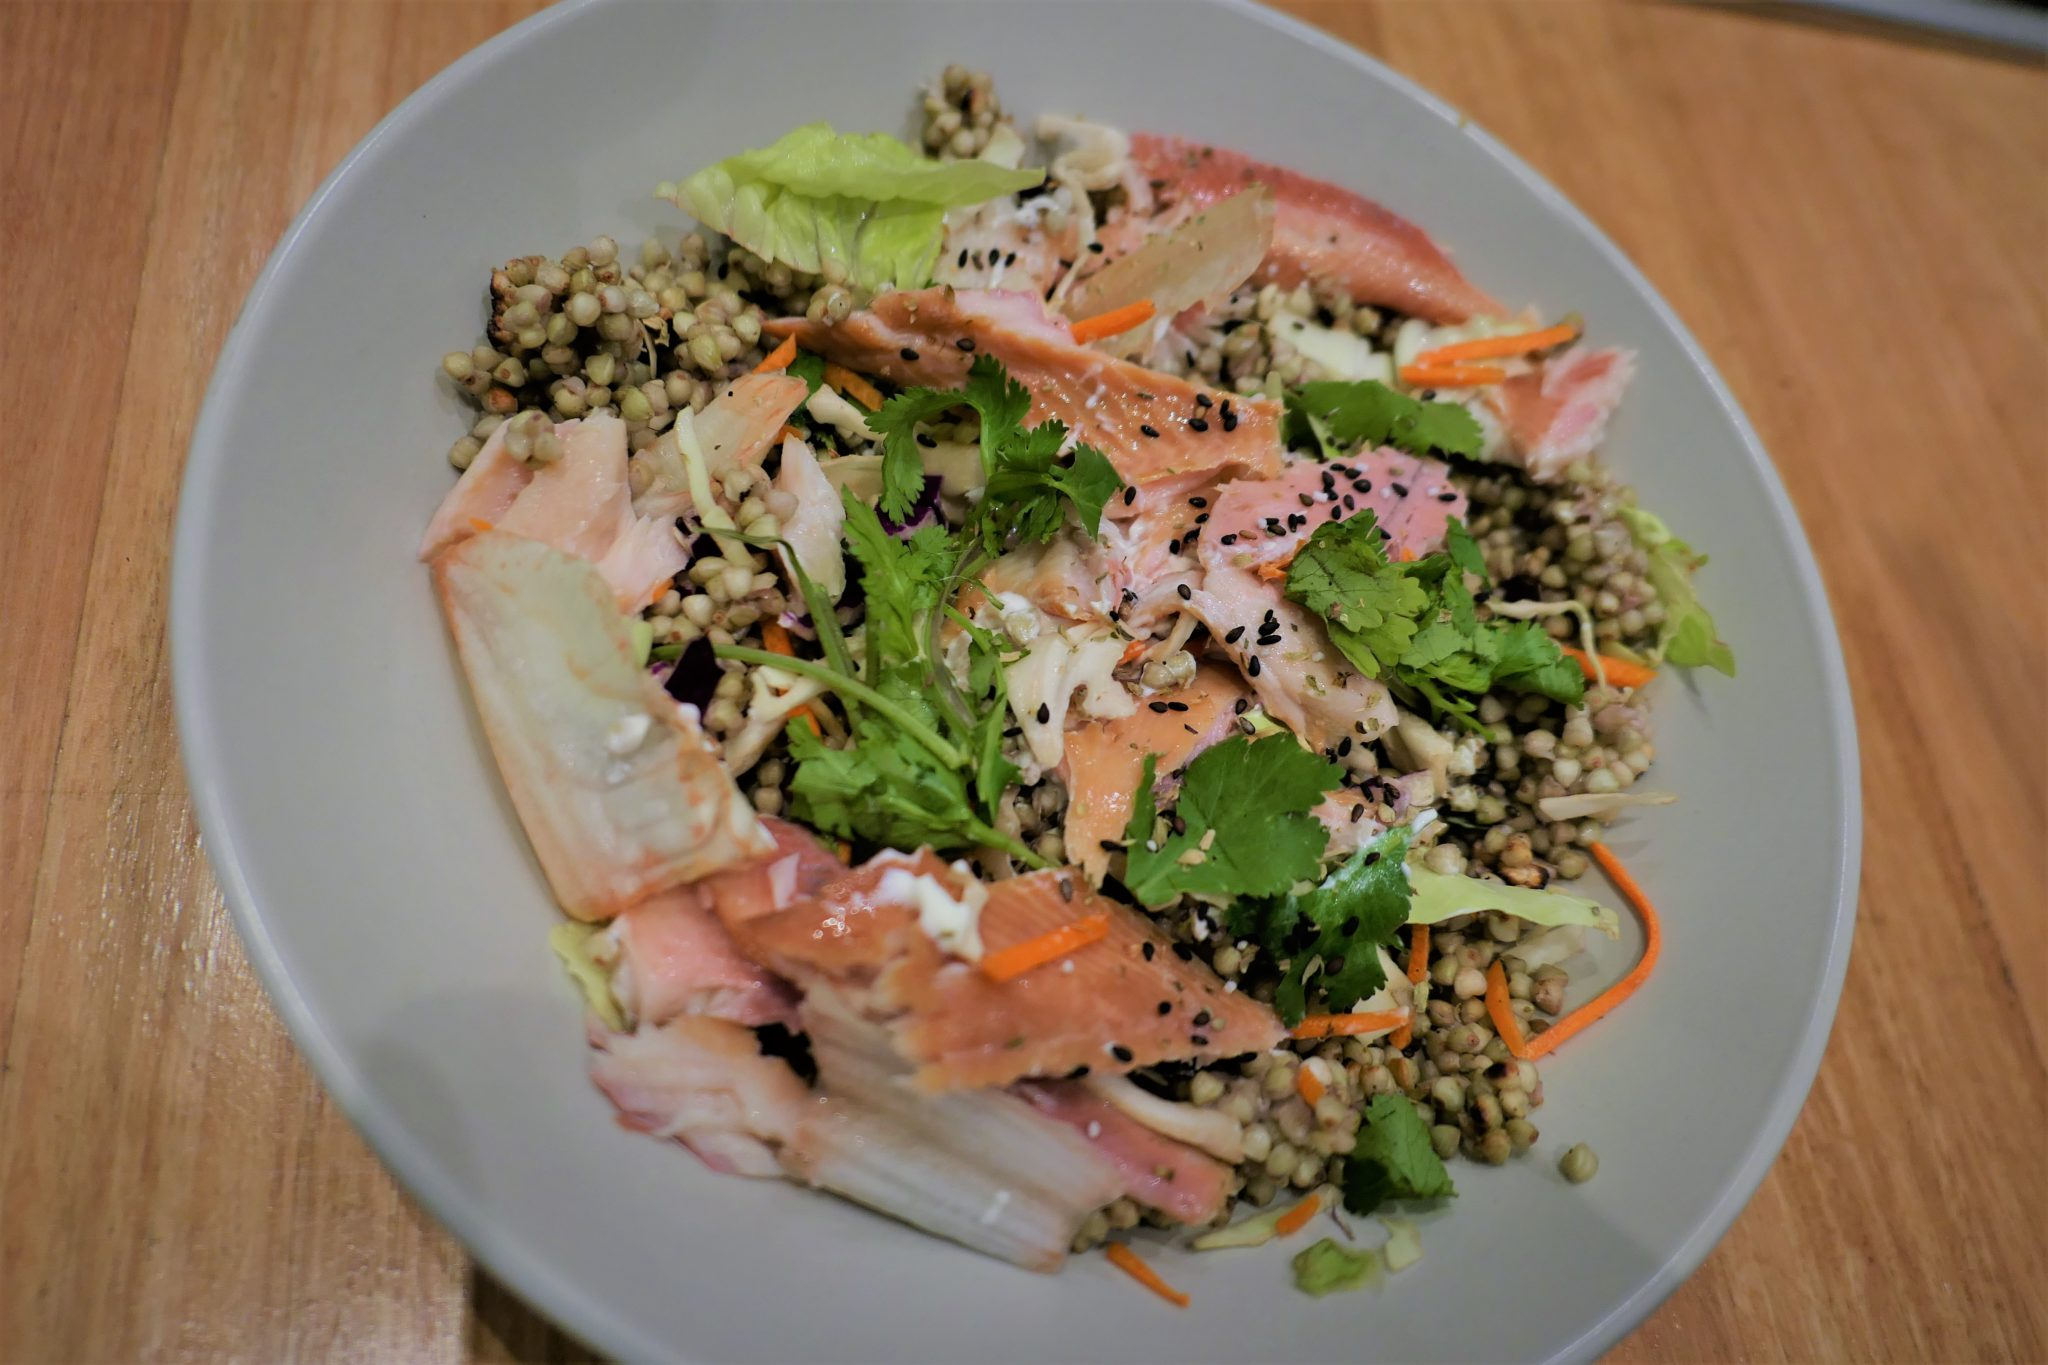 Smoked trout with buckwheat and veggies